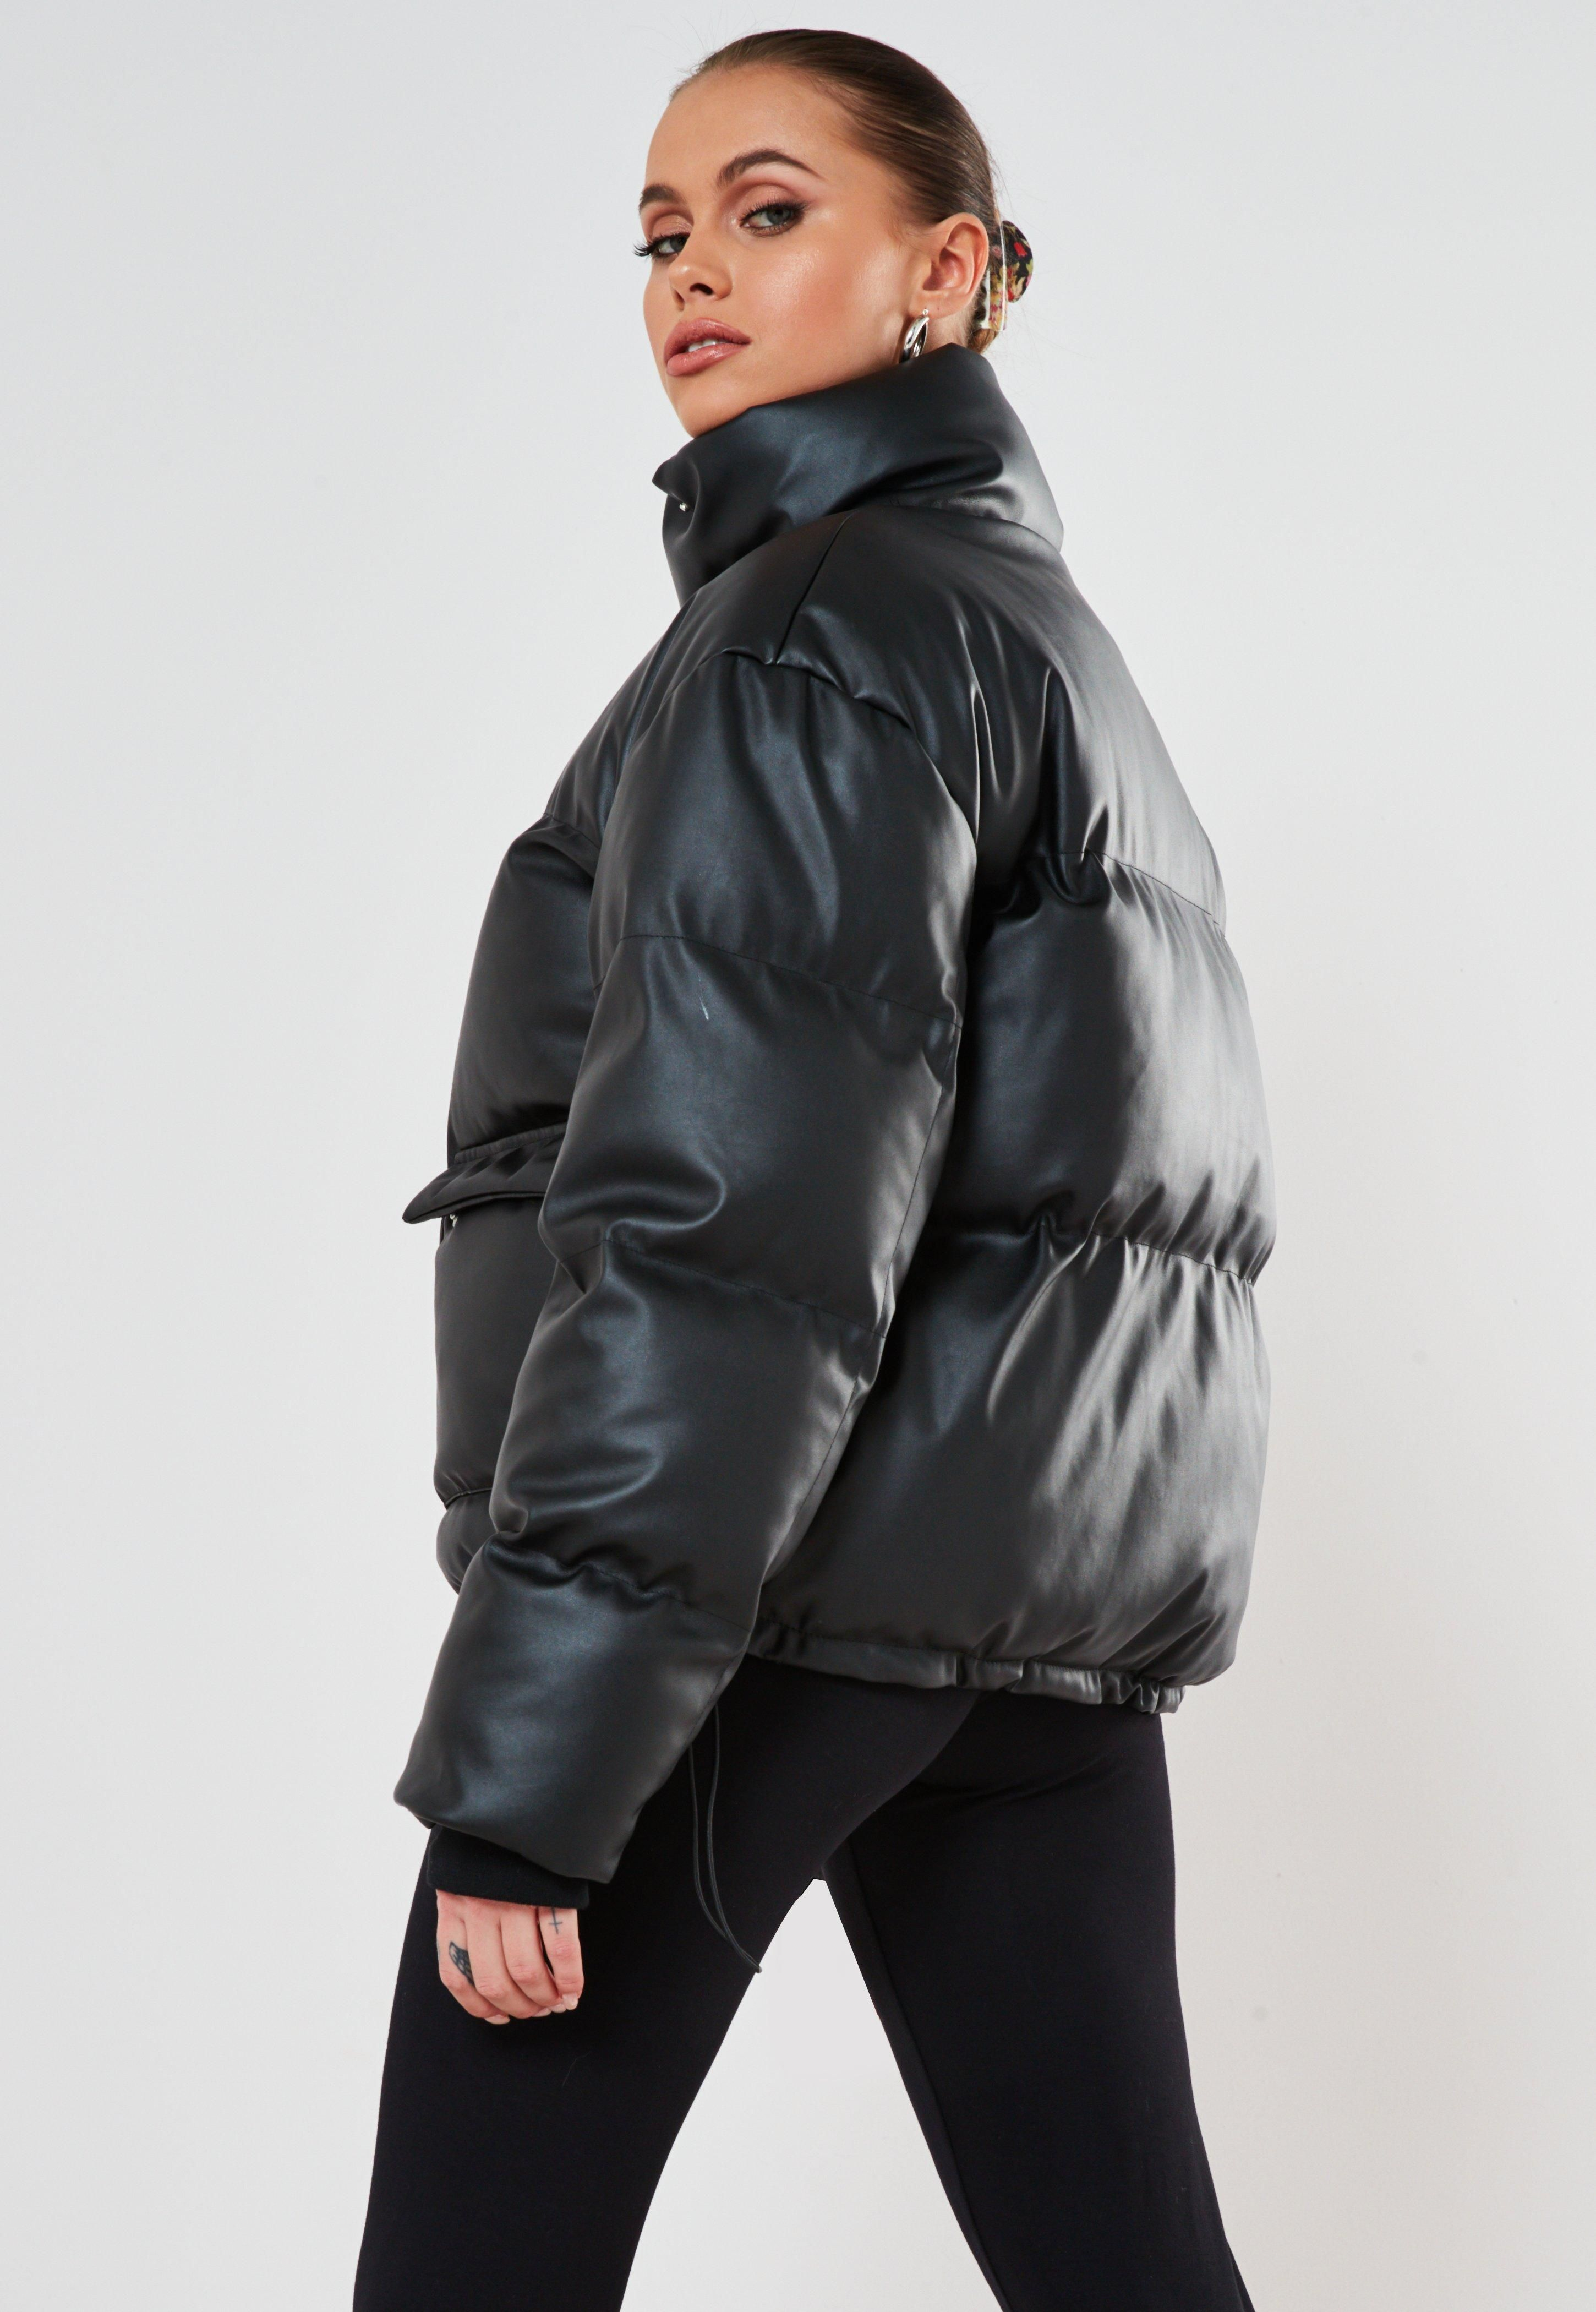 Missguided Black Faux Leather Puffer Jacket Leather Puffer Jacket Jackets Black Faux Leather [ 4200 x 2900 Pixel ]